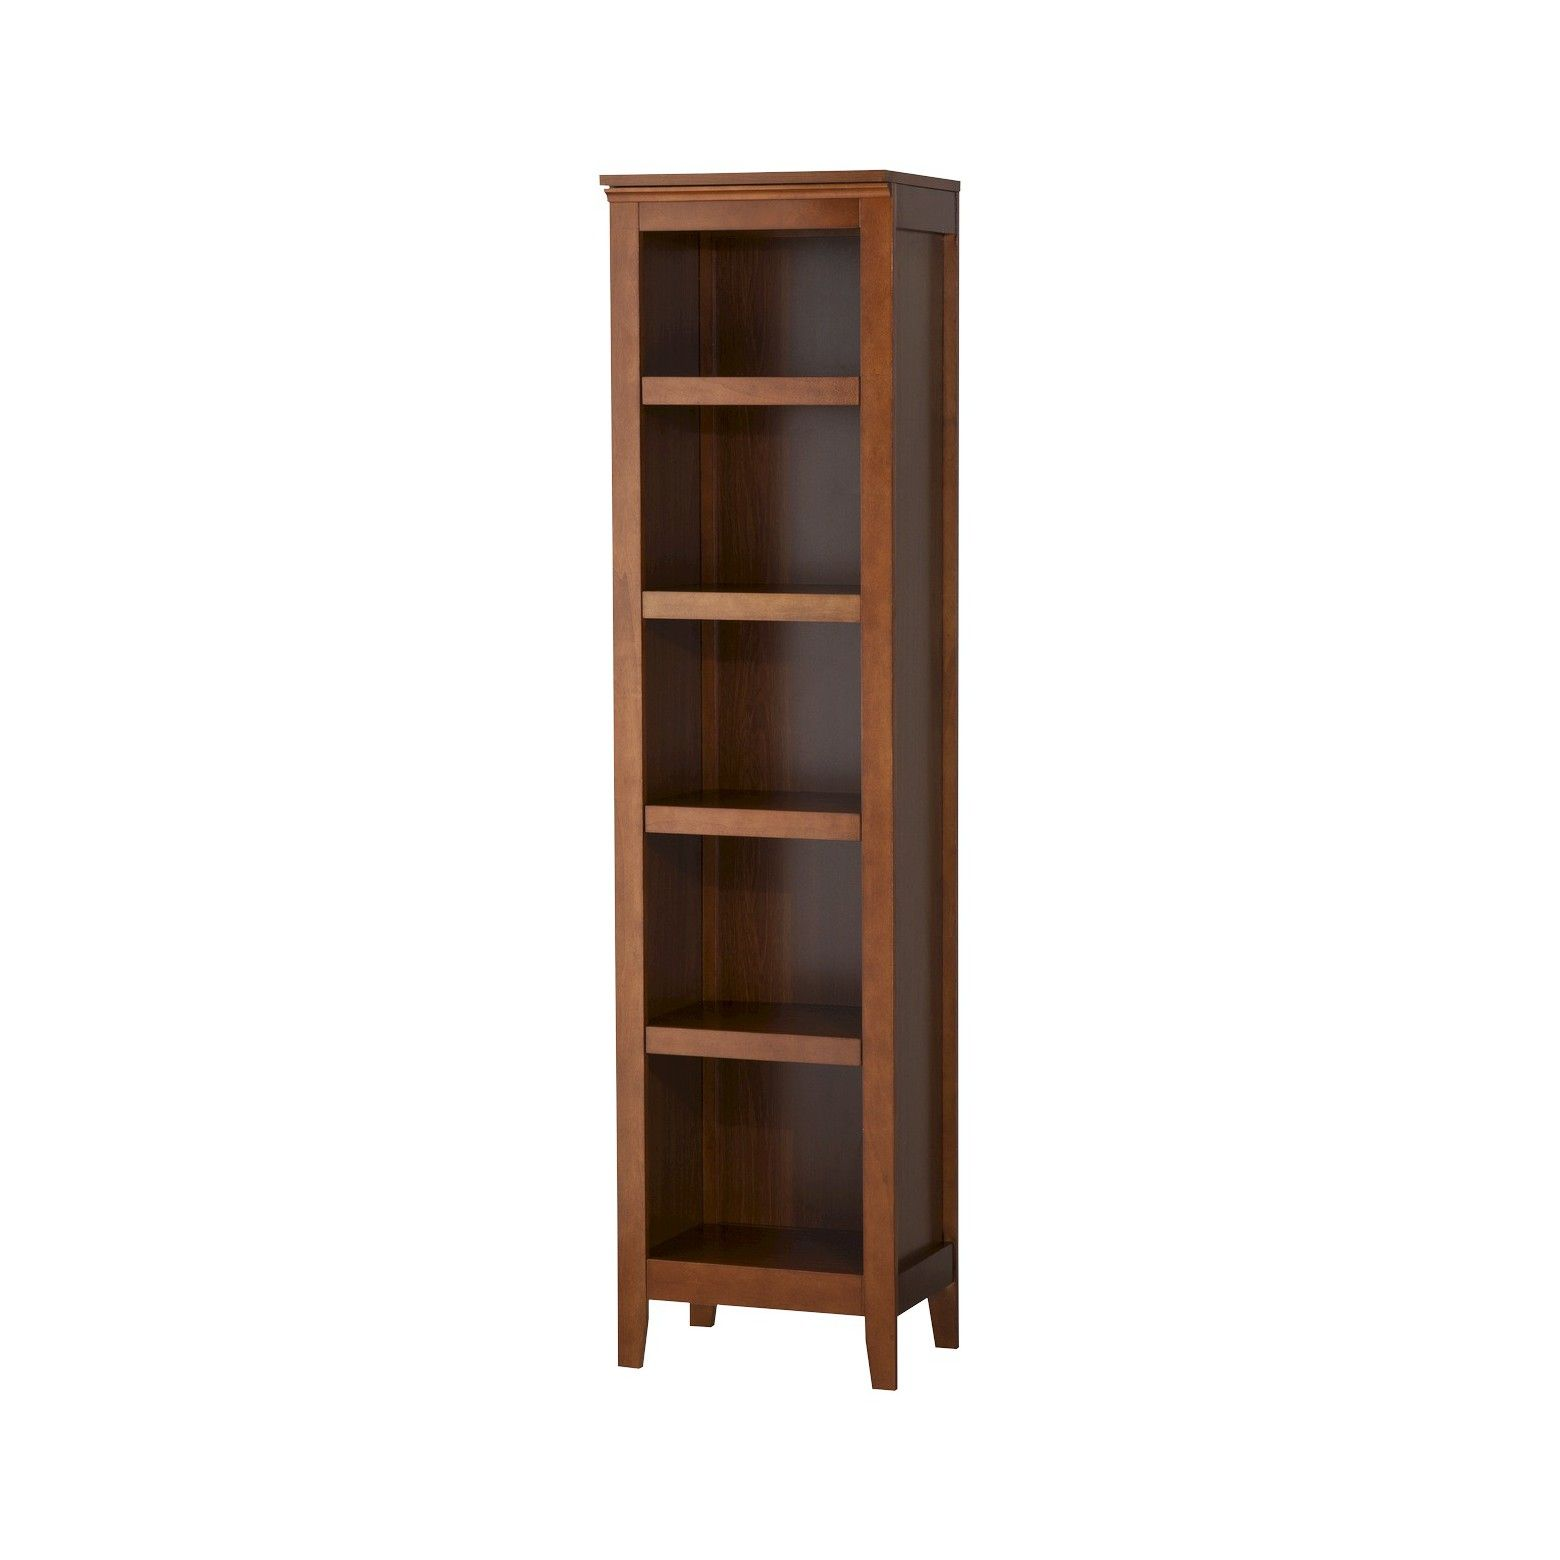 add timeless style to any room with the carson narrow bookcase